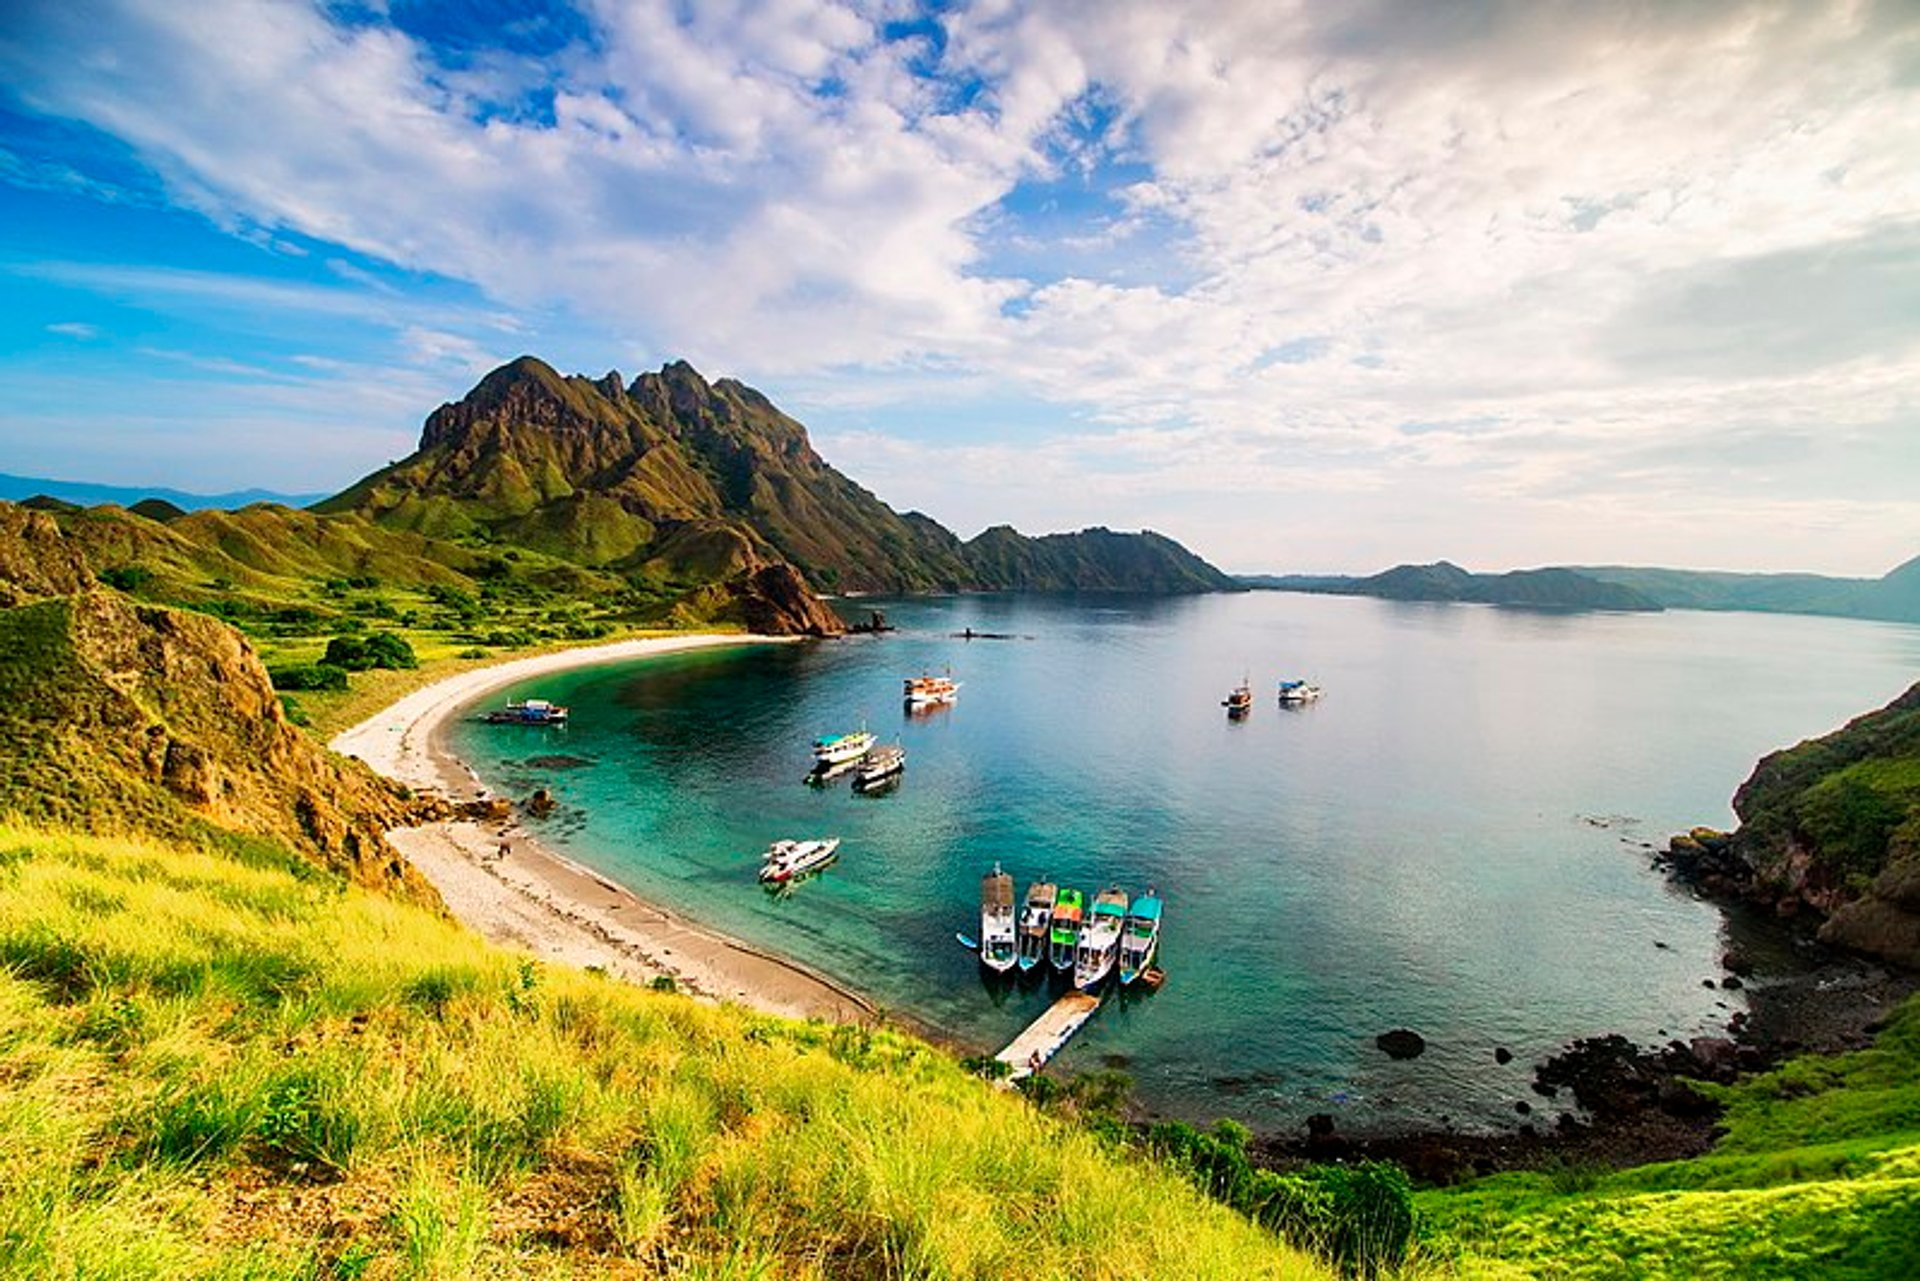 Best time to see Padar Island in Indonesia 2020